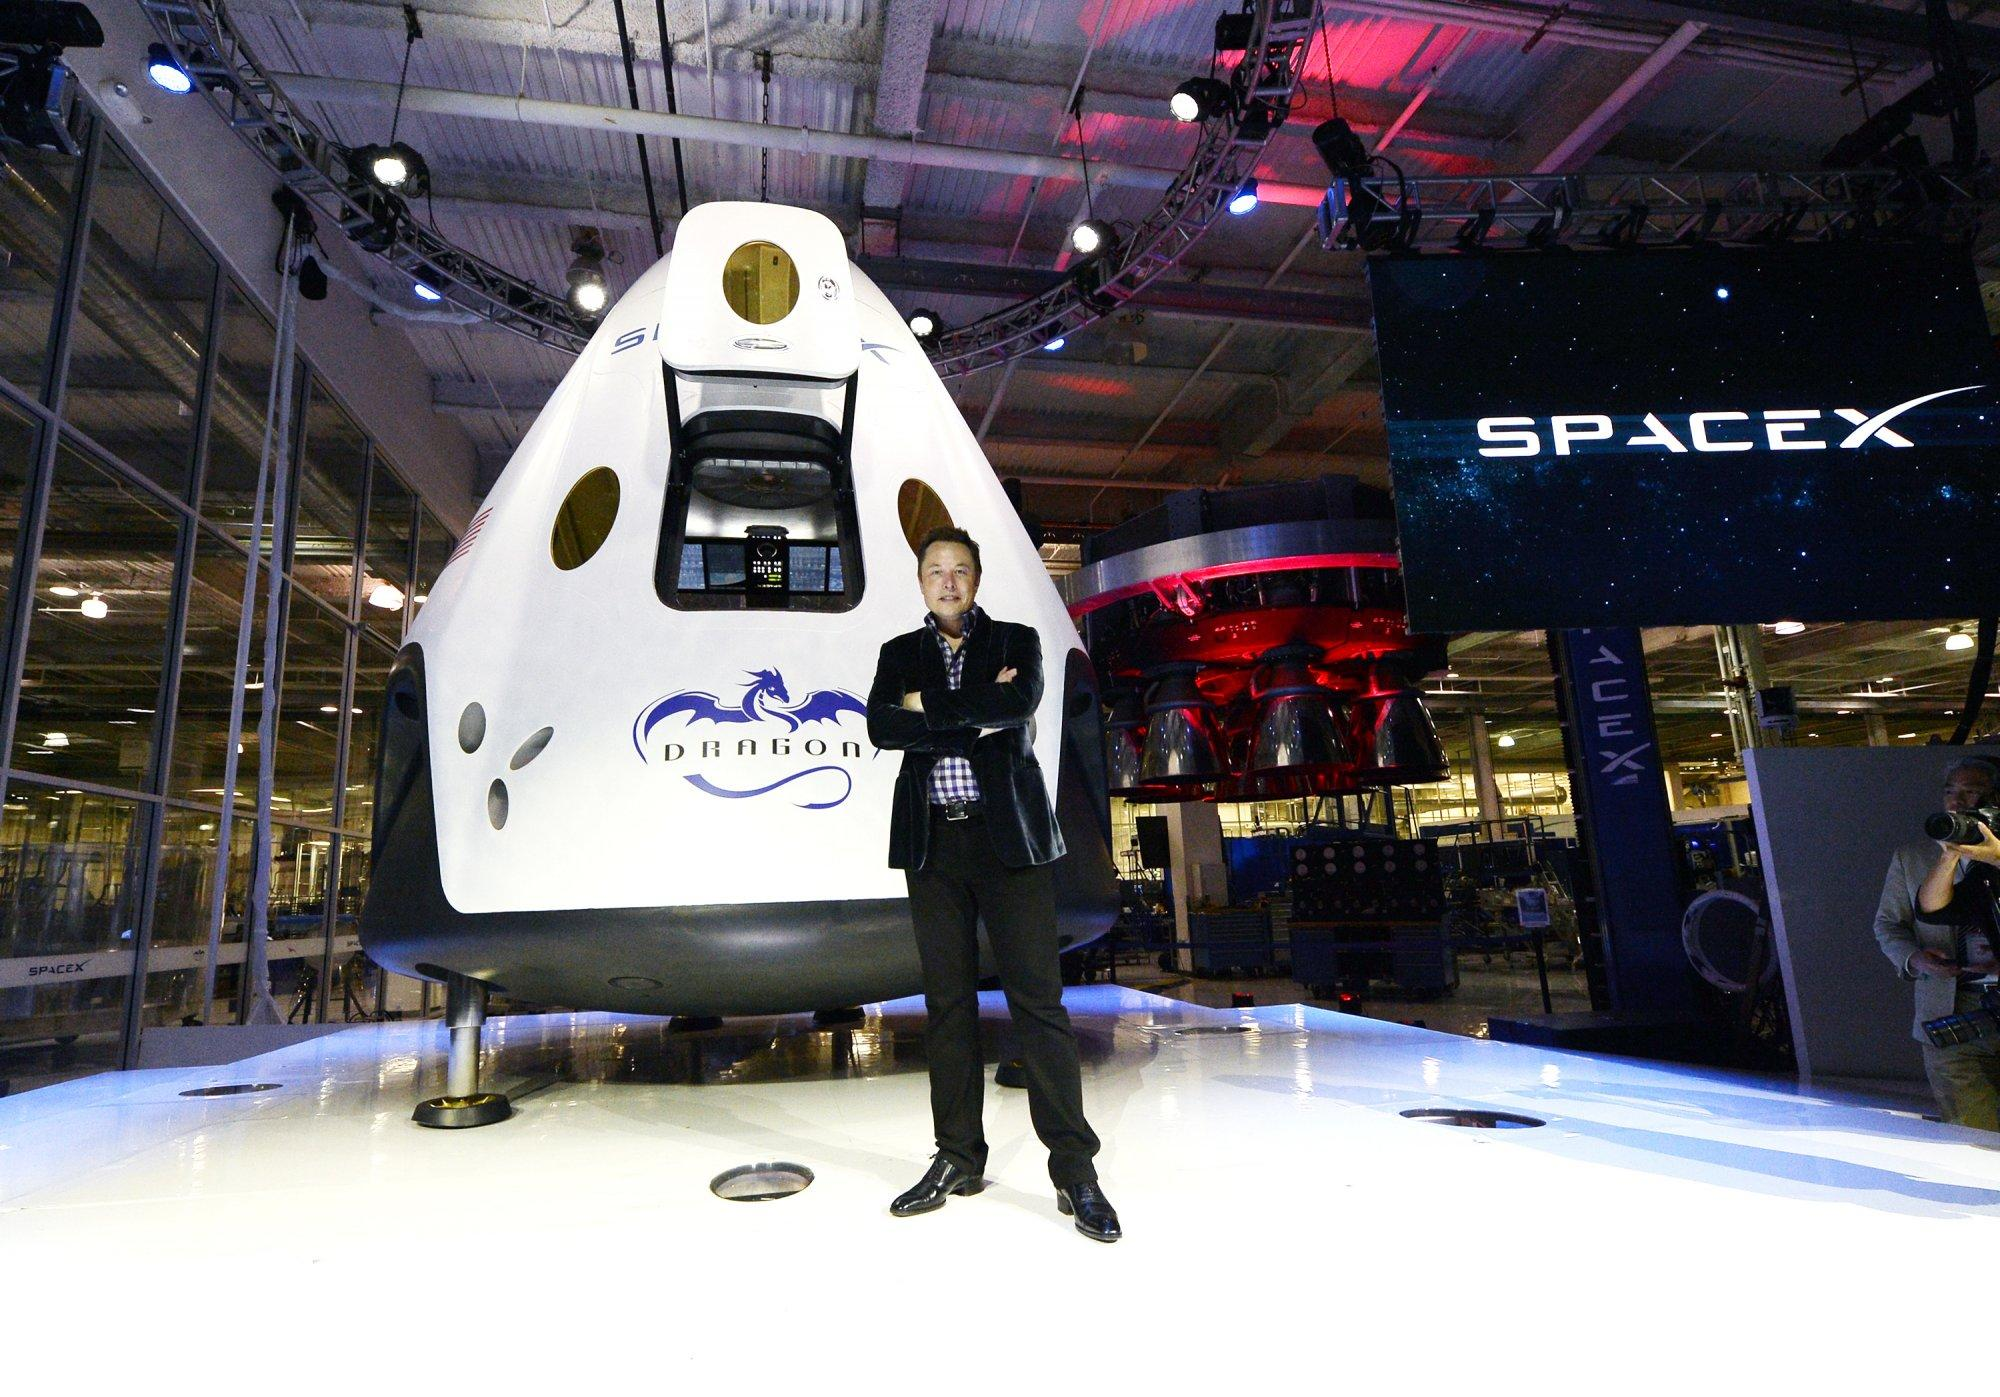 Jeff Bezos faces Elon Musk in renewed Texas space race